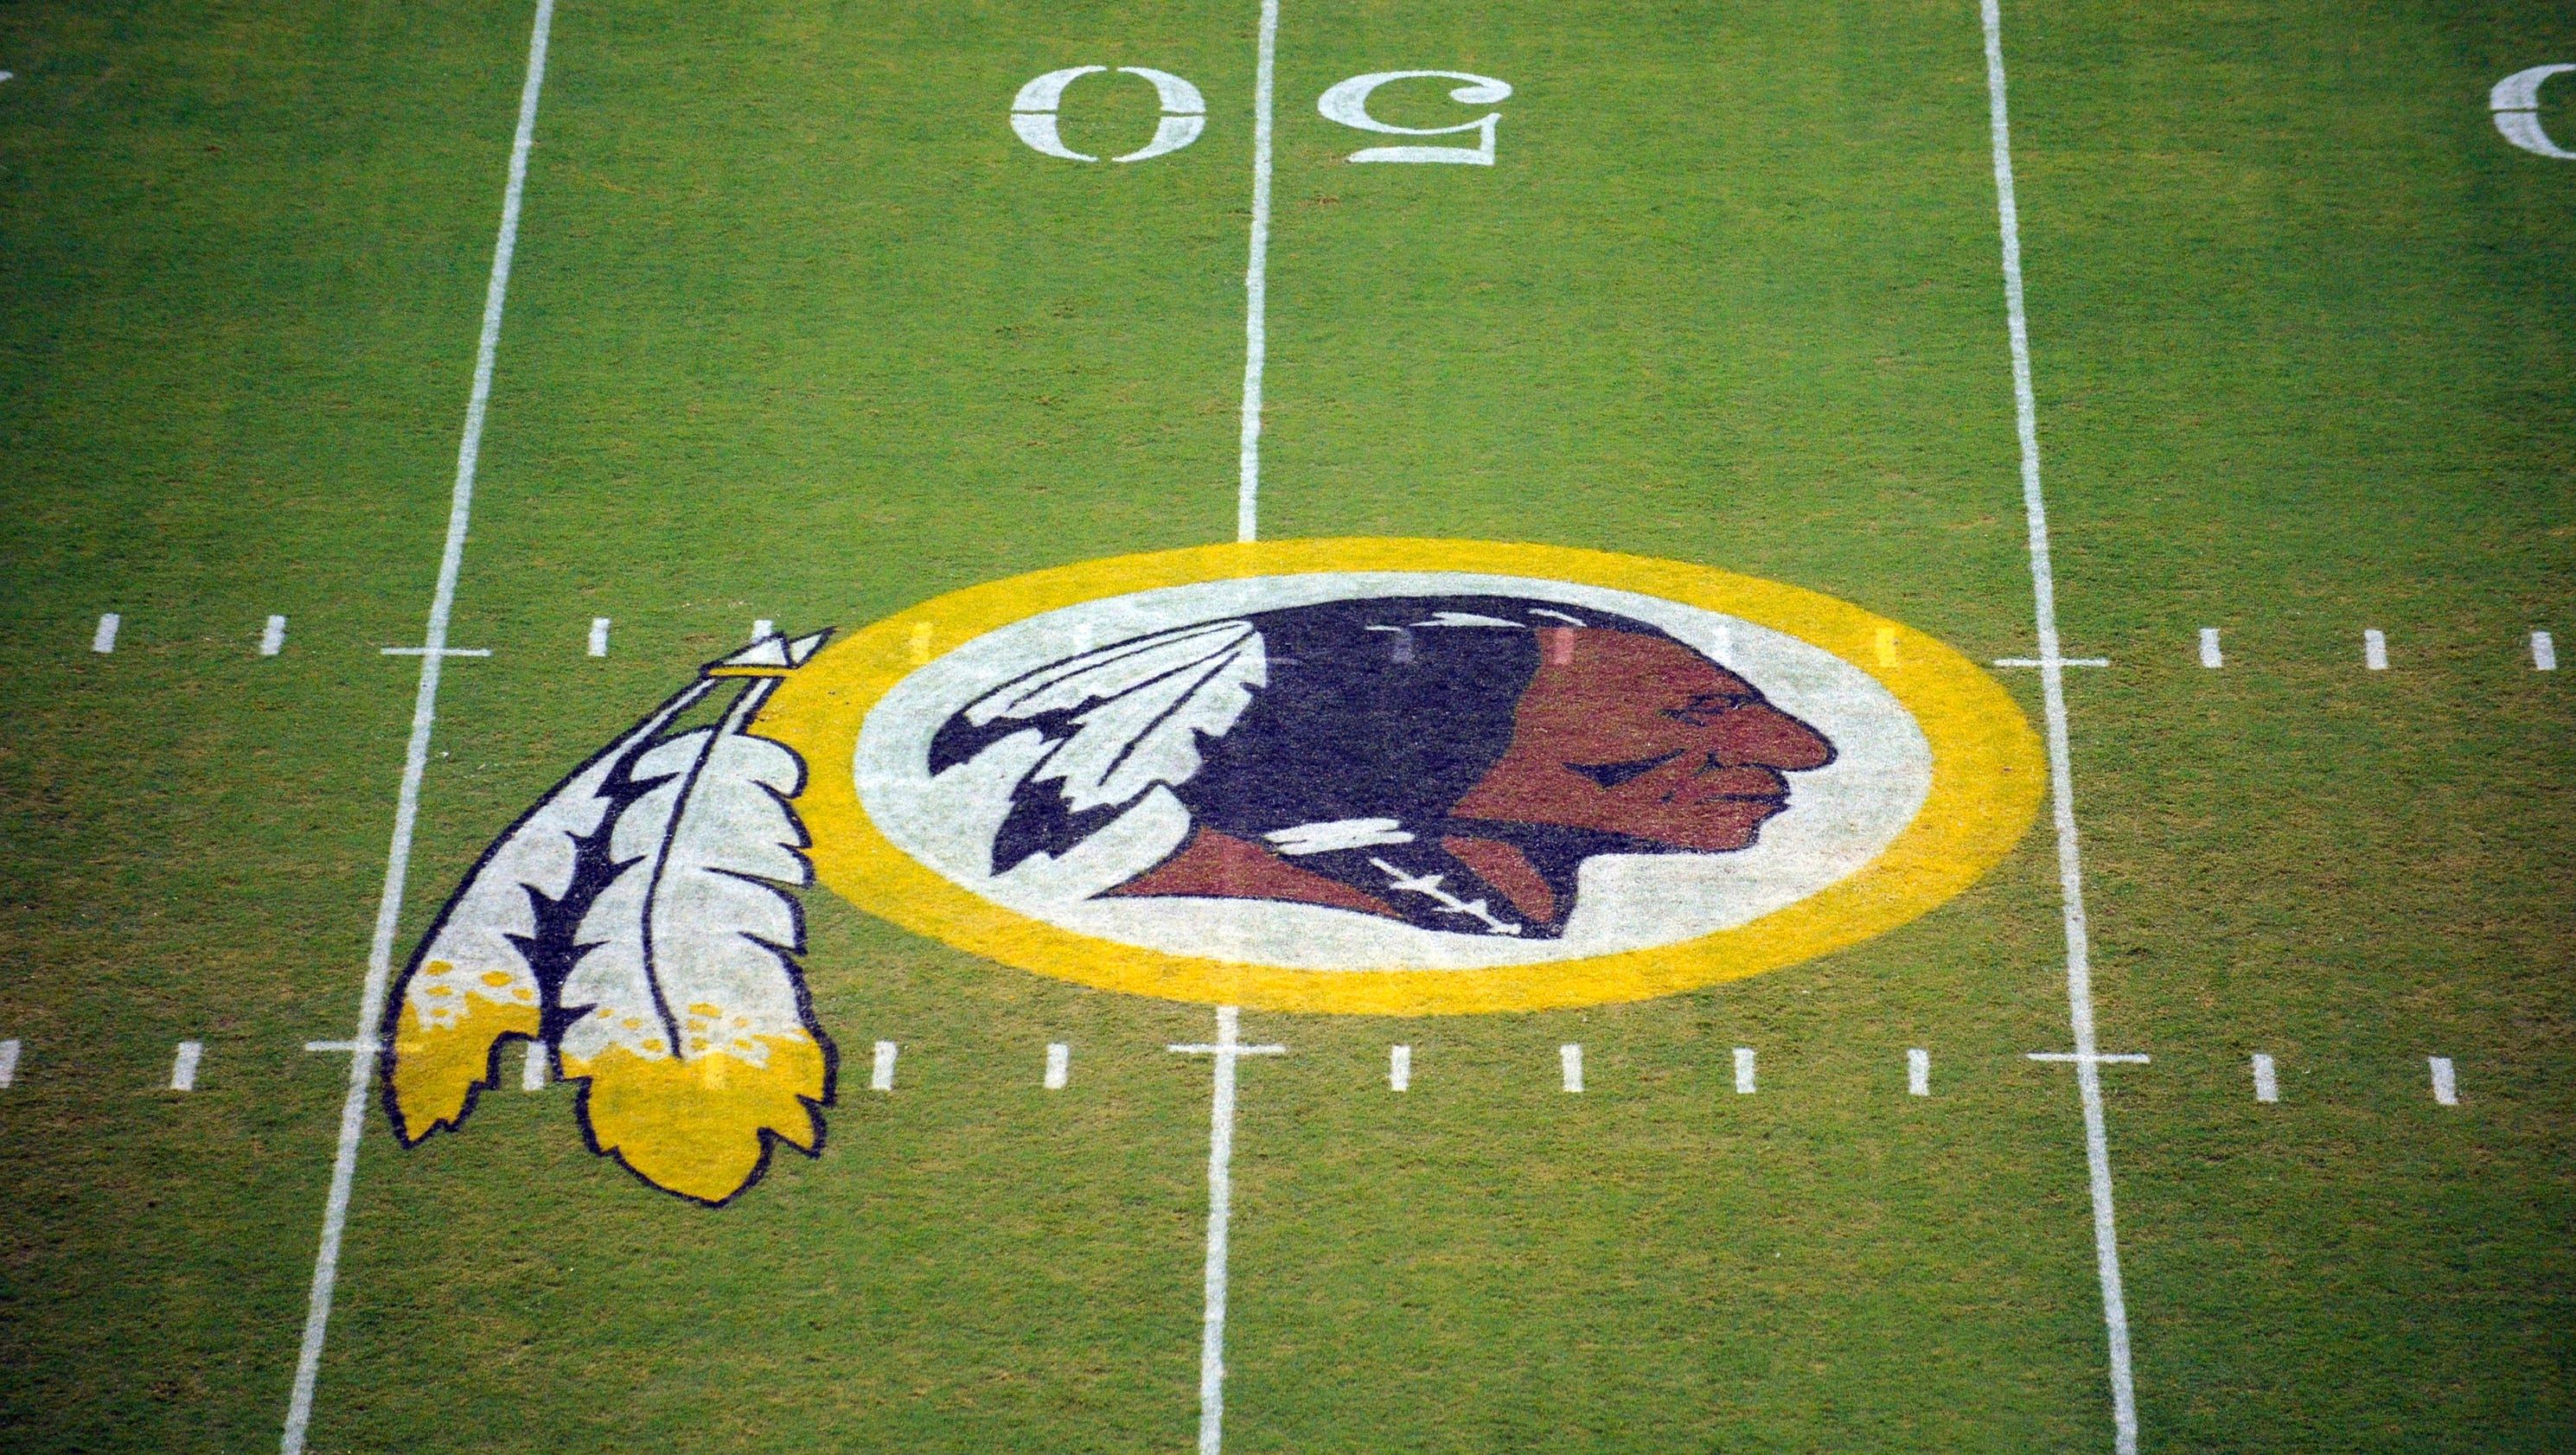 Team: Redskins not only offensive name with trademark ...